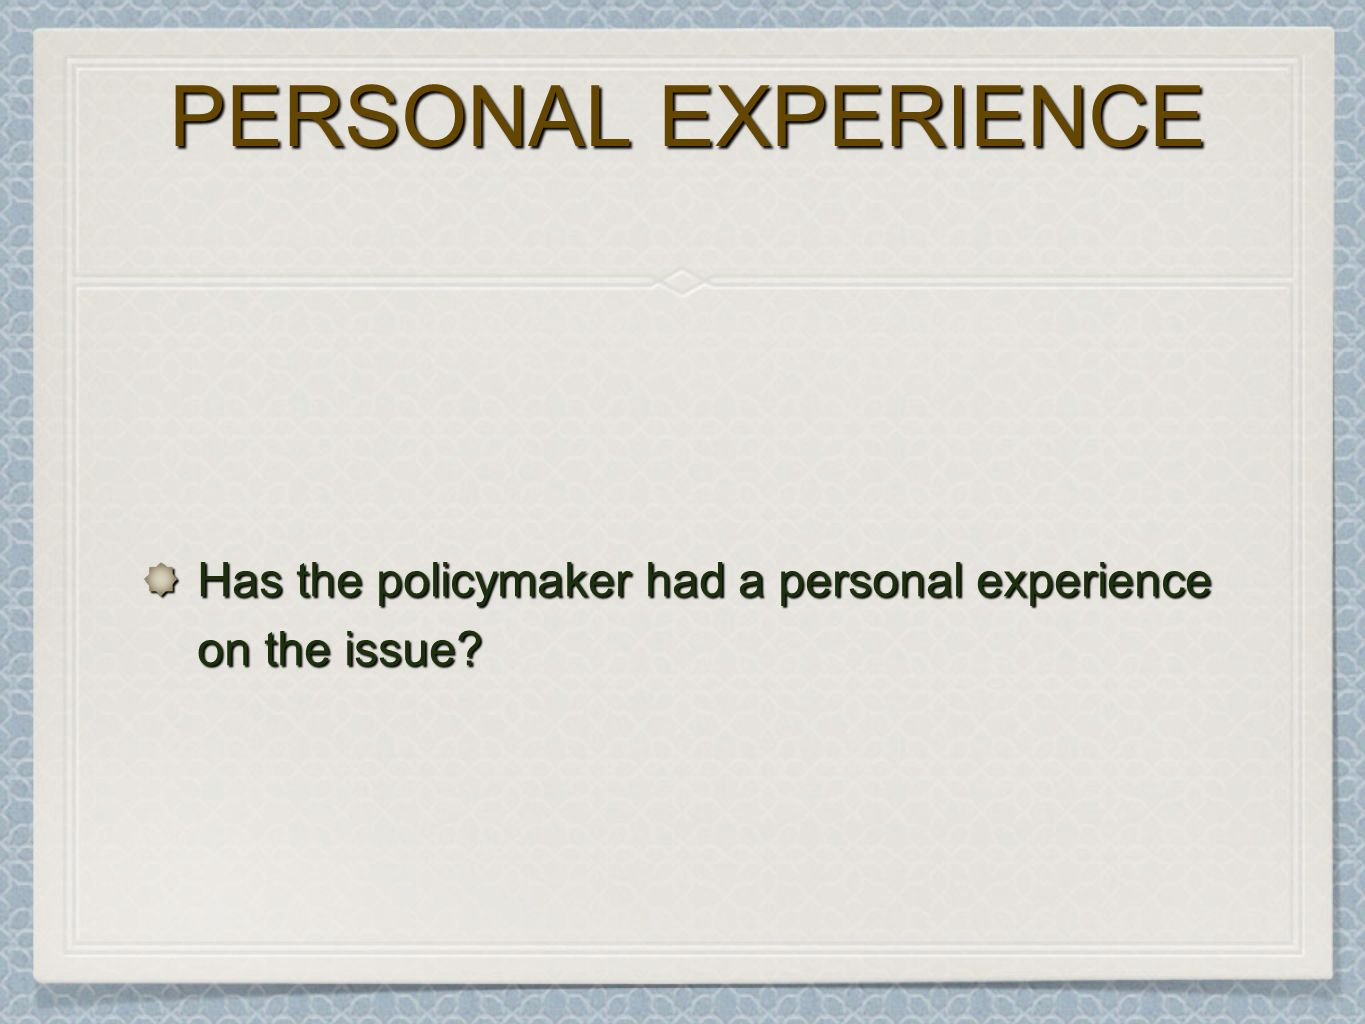 PERSONAL EXPERIENCE Has the policymaker had a personal experience on the issue